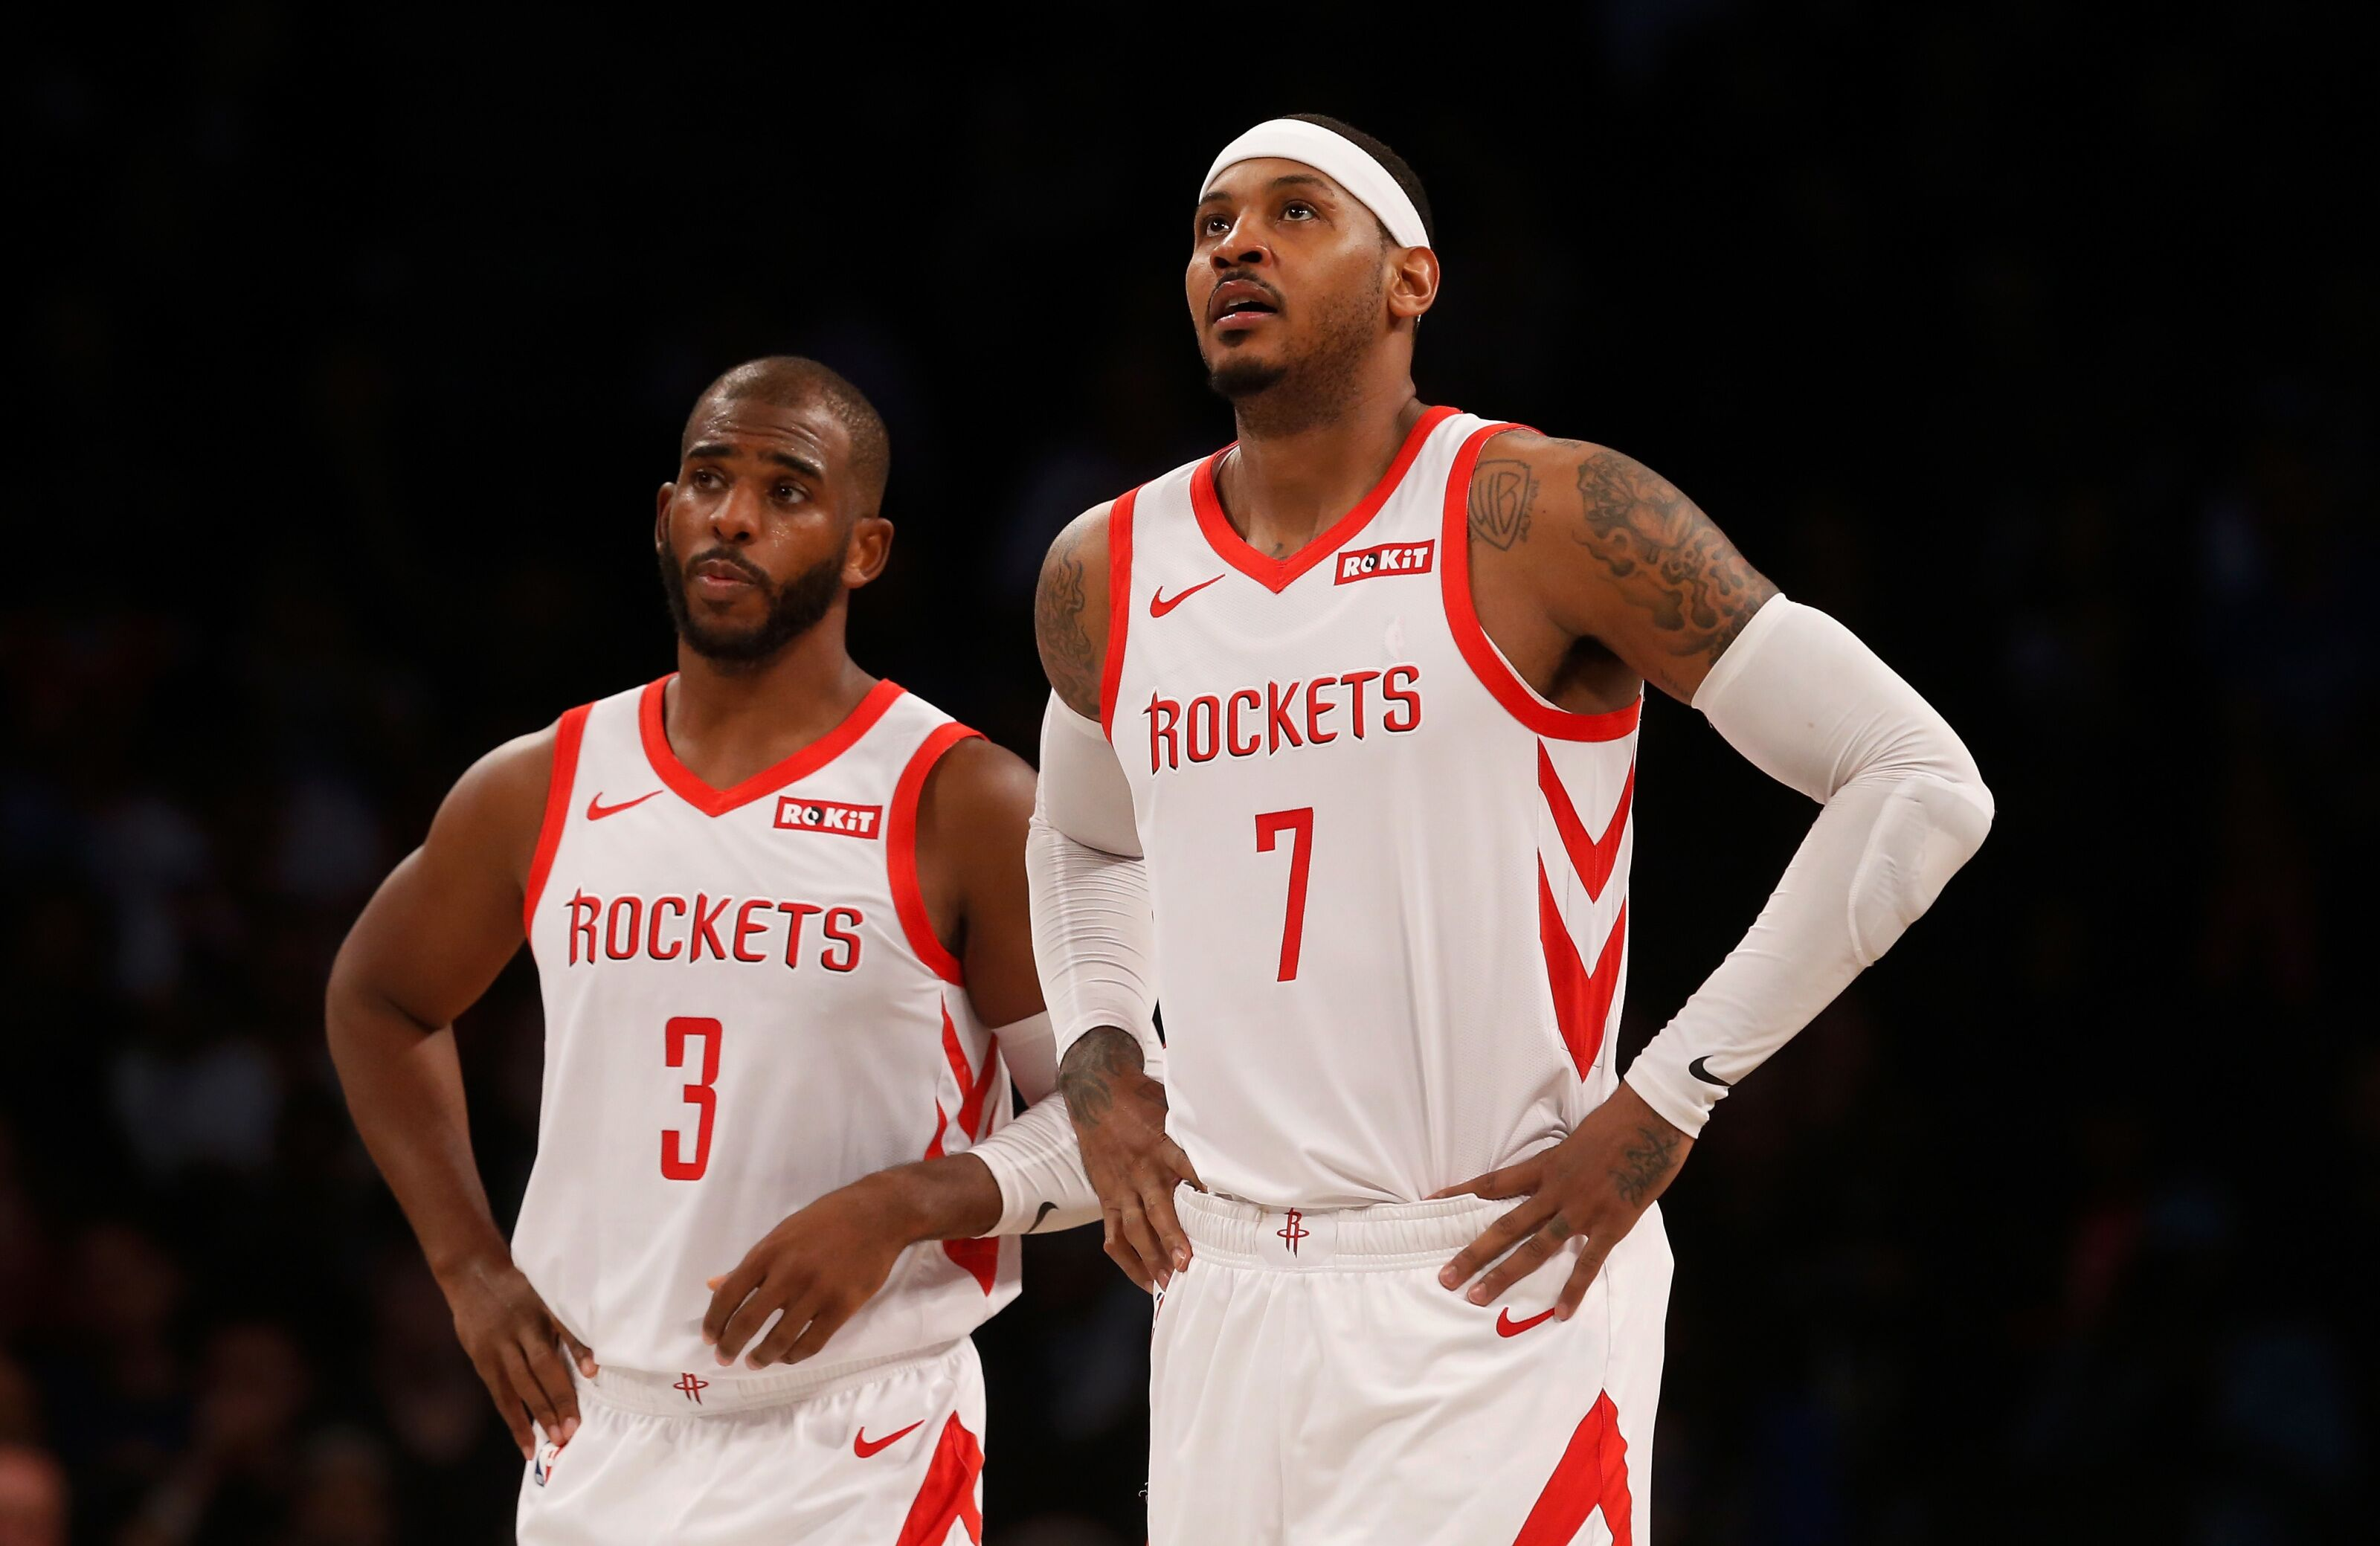 fd06badaf5b Houston Rockets Rumors  Carmelo Anthony could be traded by next week